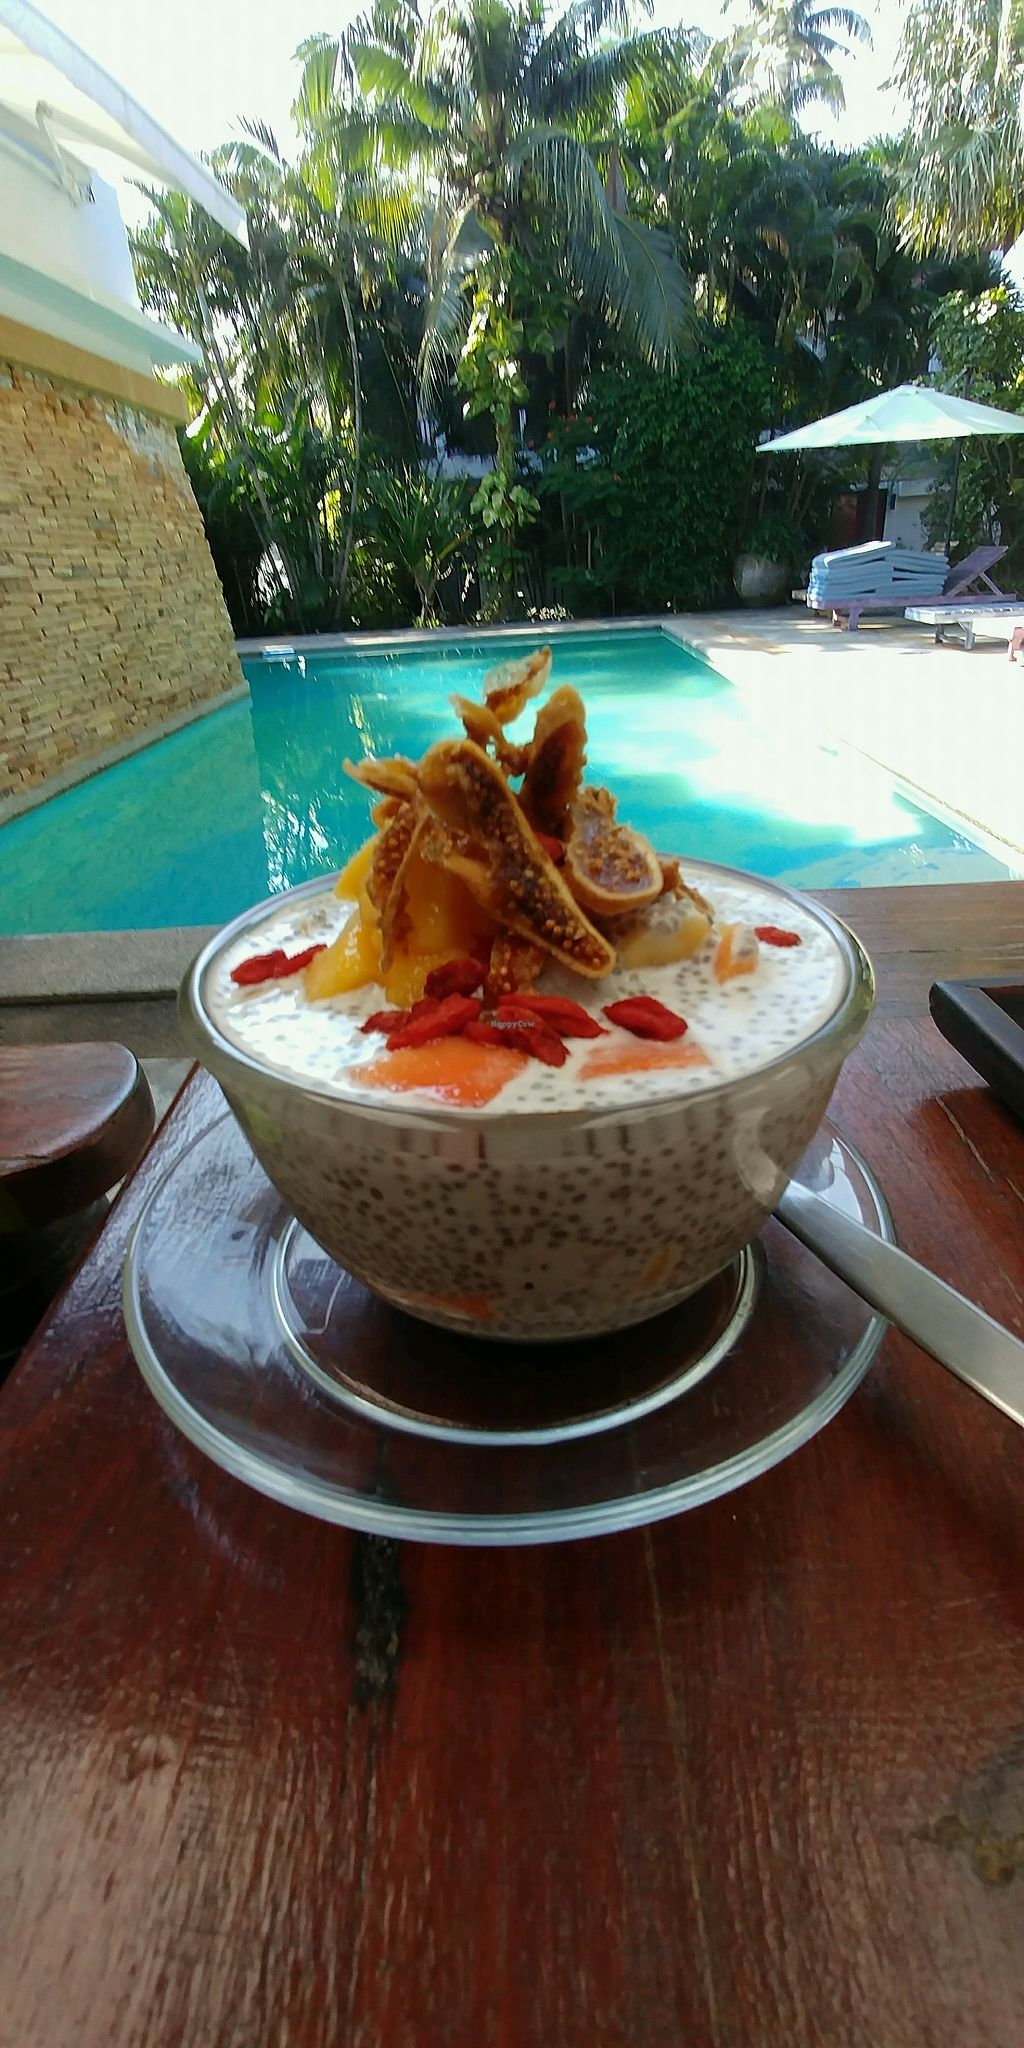 """Photo of Greenlight Cafe & Bar  by <a href=""""/members/profile/queencrosbie"""">queencrosbie</a> <br/>chia pudding <br/> December 13, 2017  - <a href='/contact/abuse/image/73356/335123'>Report</a>"""